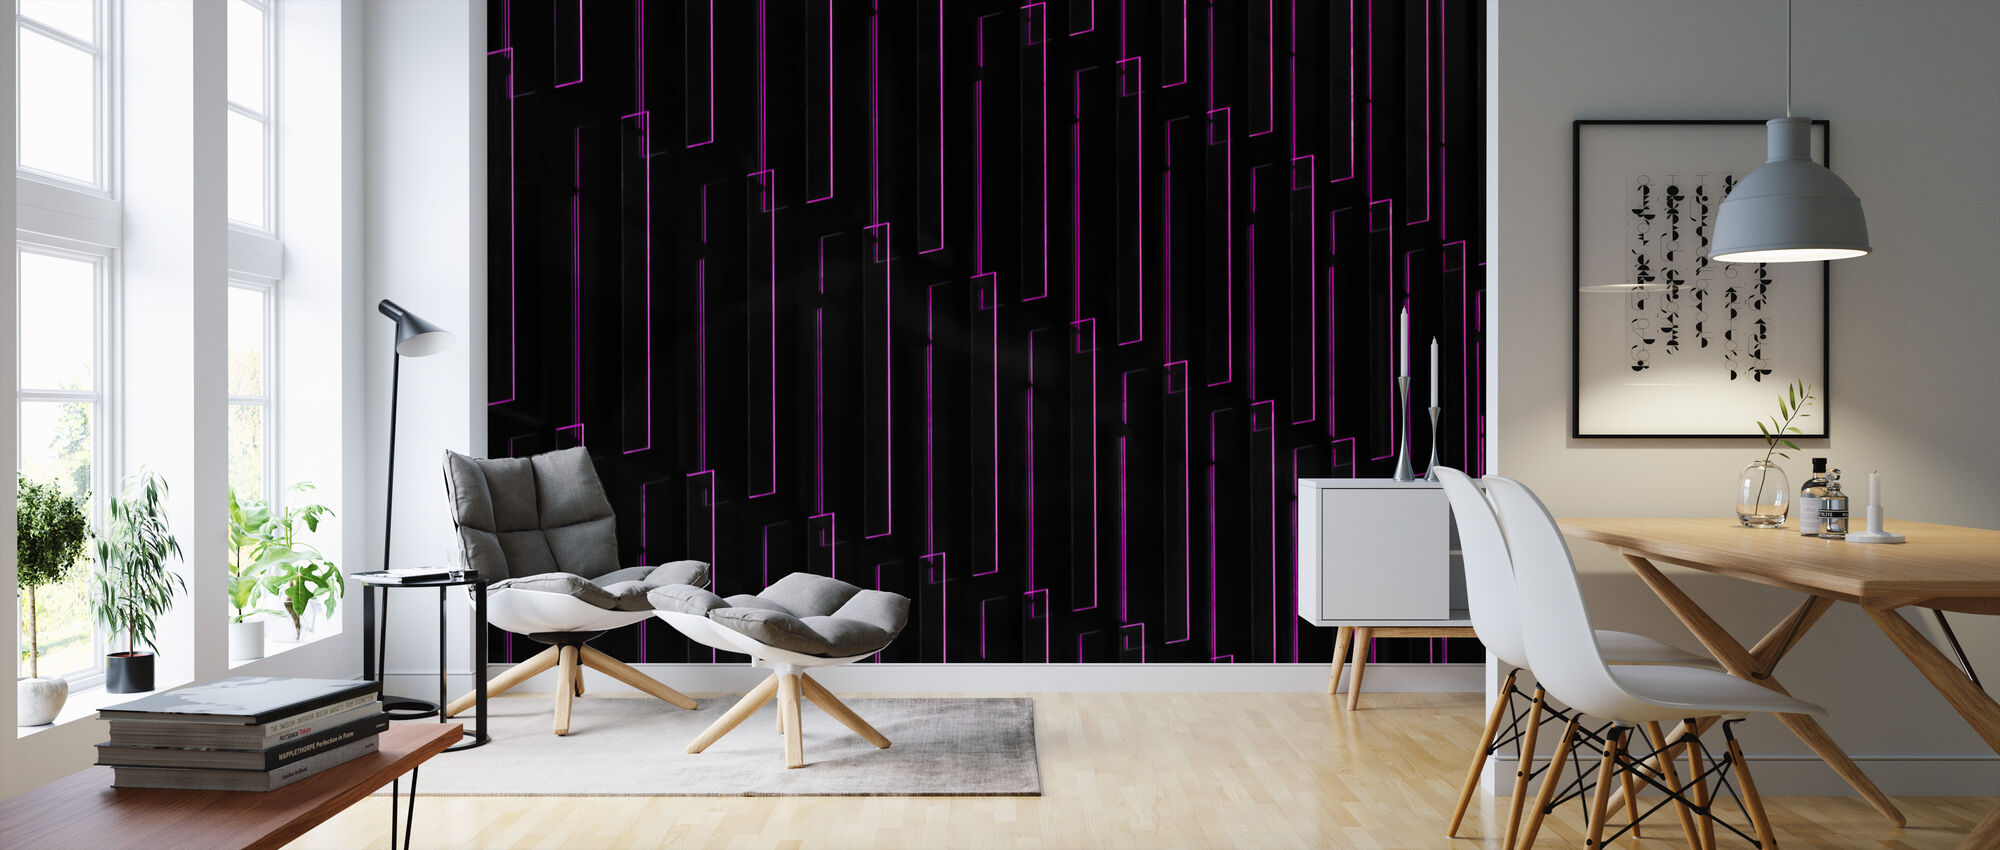 Purple Neon Lights - Wallpaper - Living Room